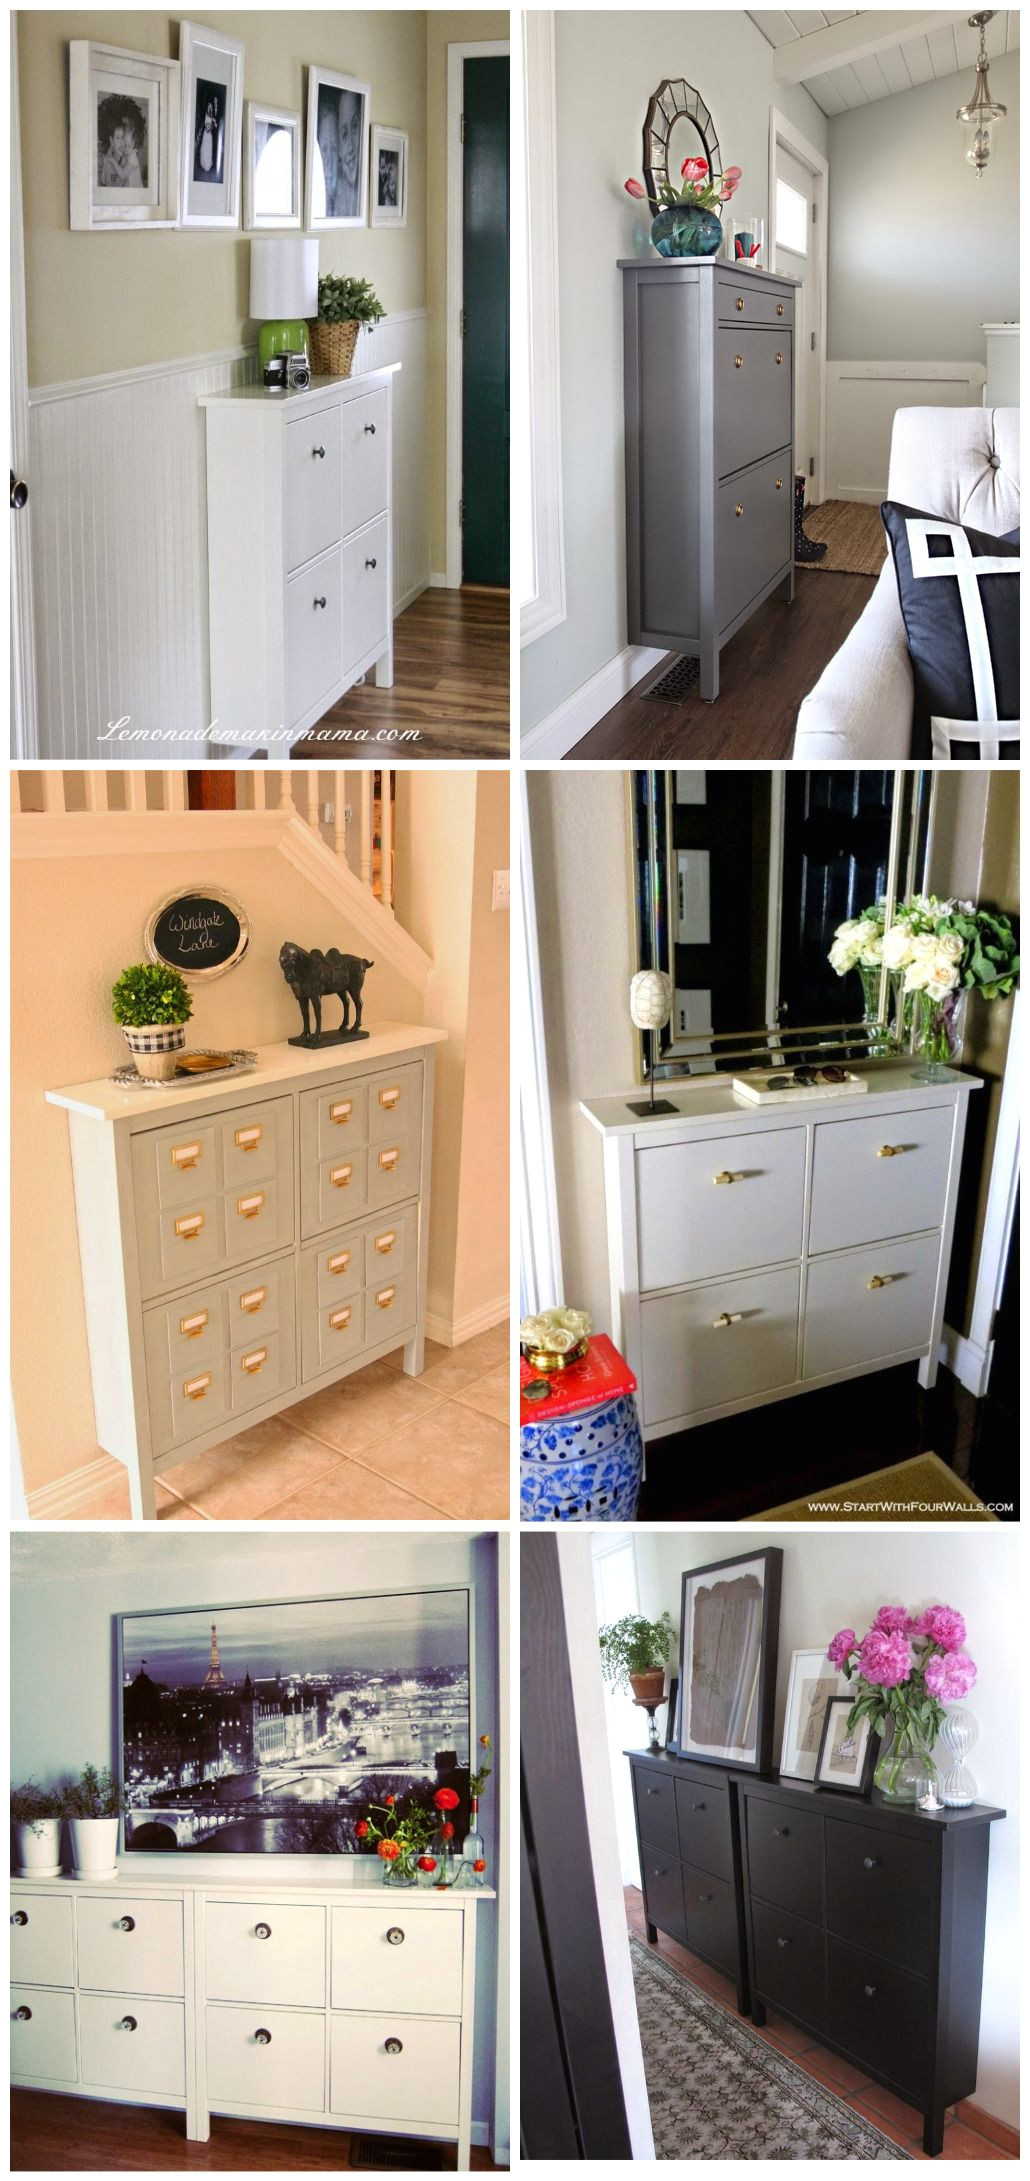 ikea hemnes shoe cabinet only has front legs to allow for the closest fit to the wall the minimal 8 5 11 75 depth is ideal for a small entry hallway